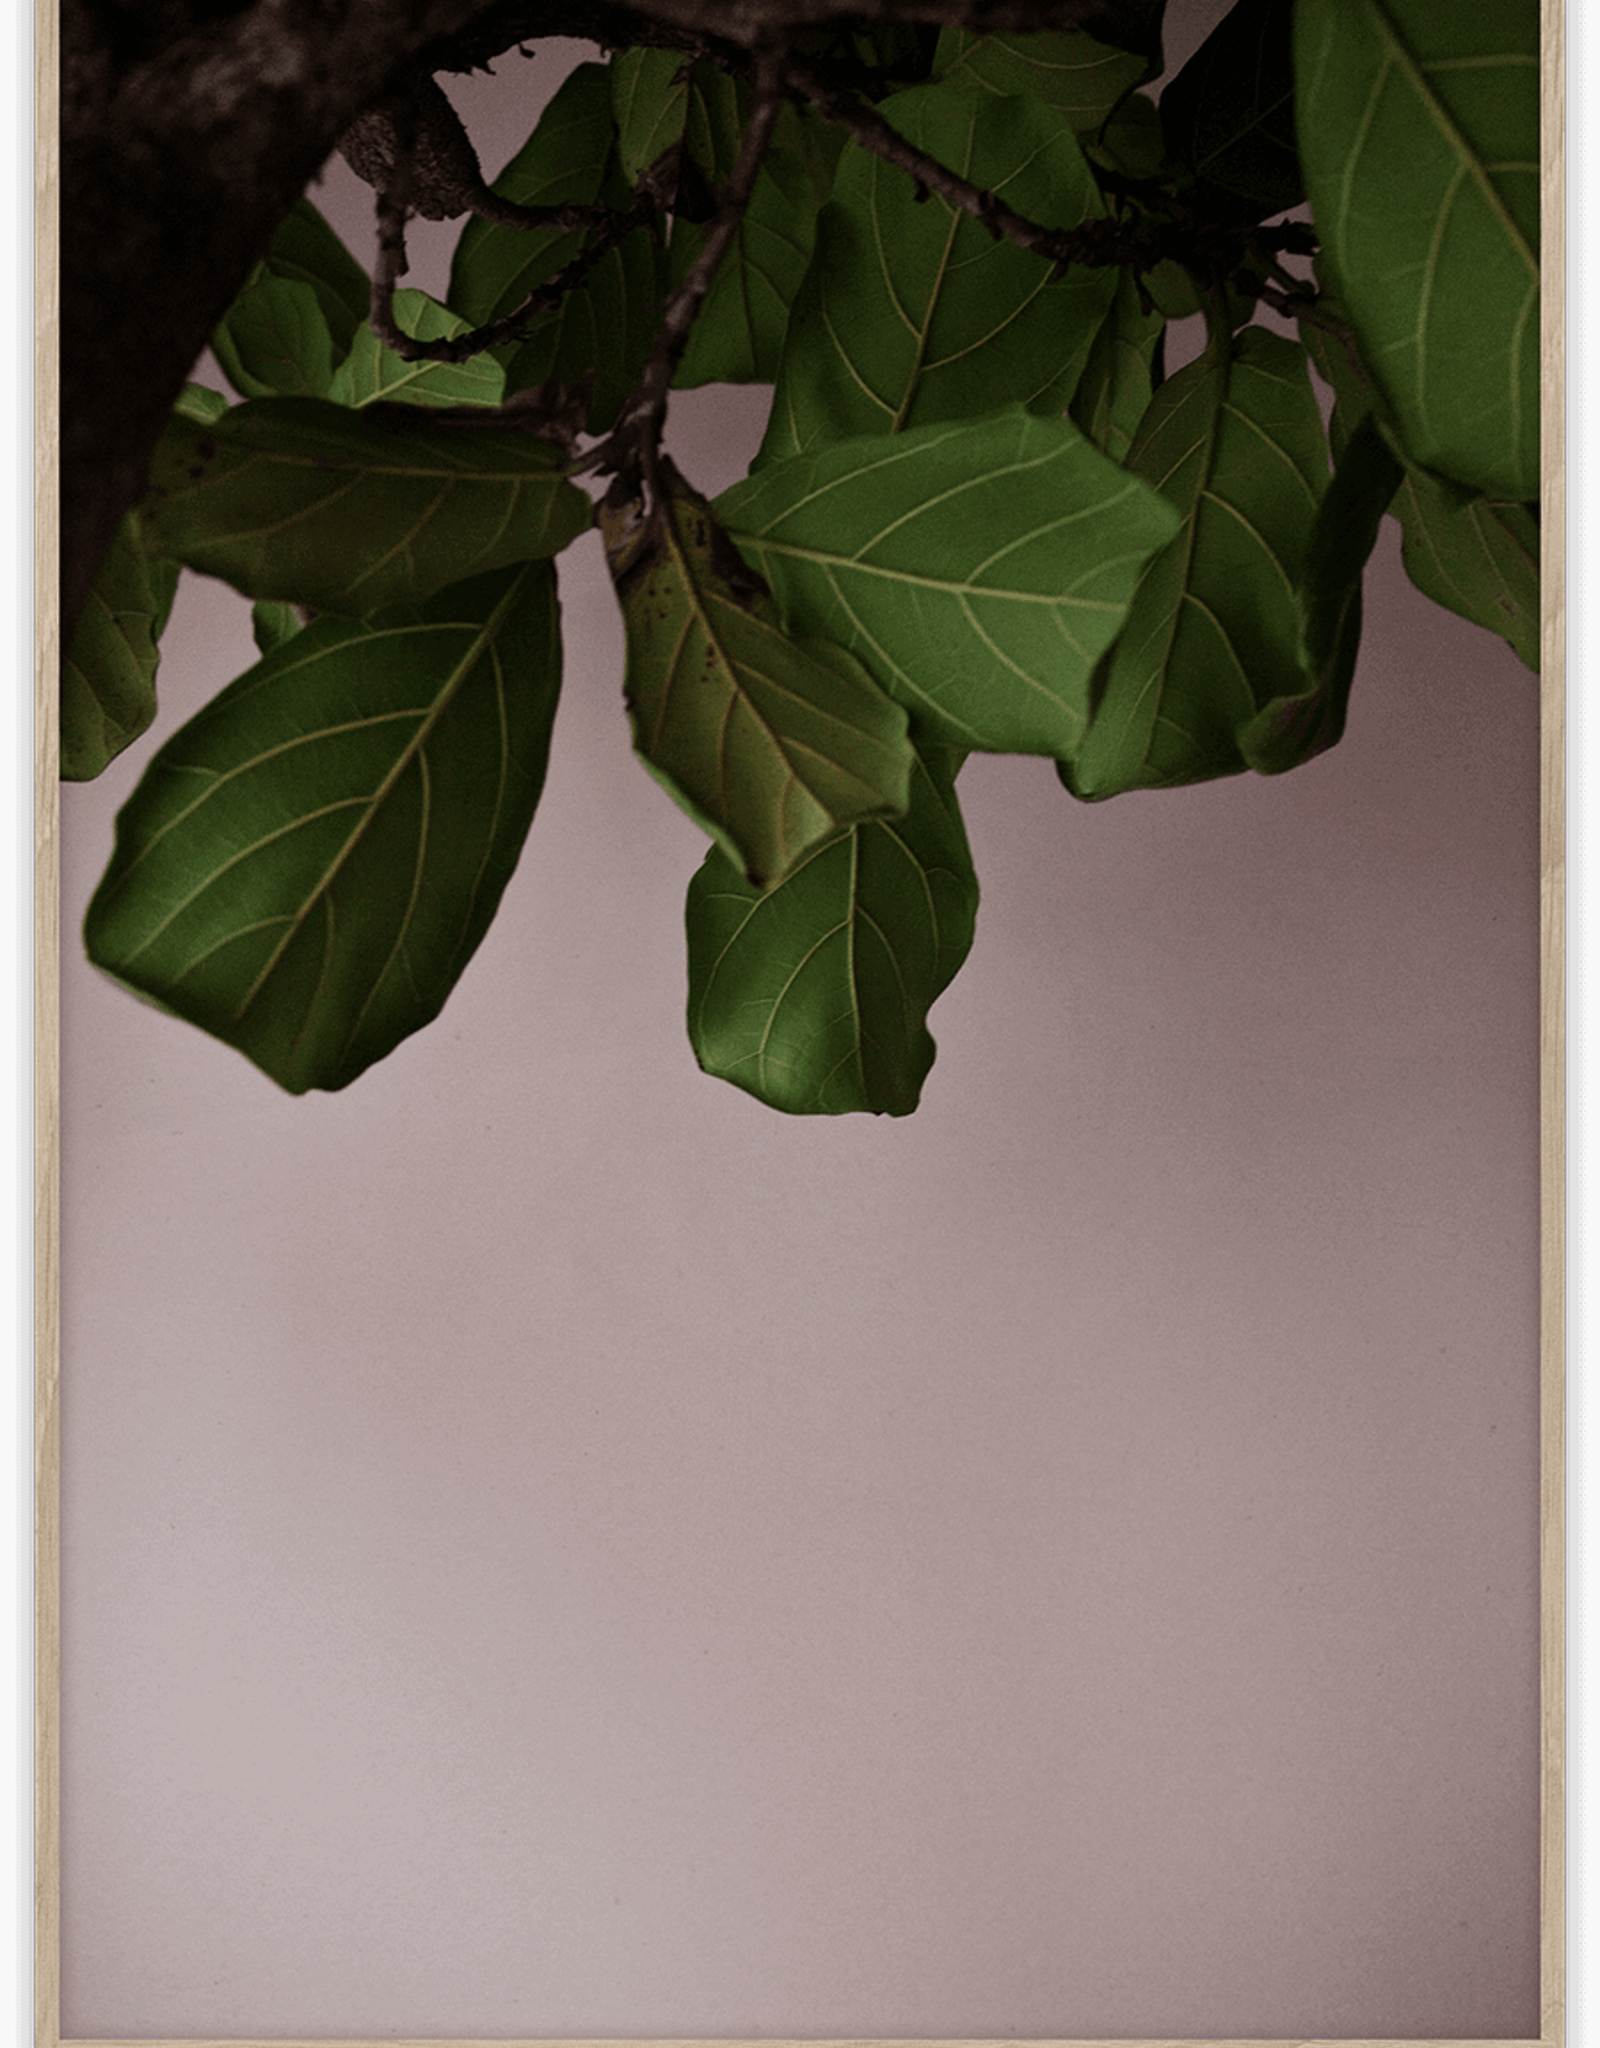 Paper Collective Paper Collective Poster Norm Architects Green Leaves 30x40